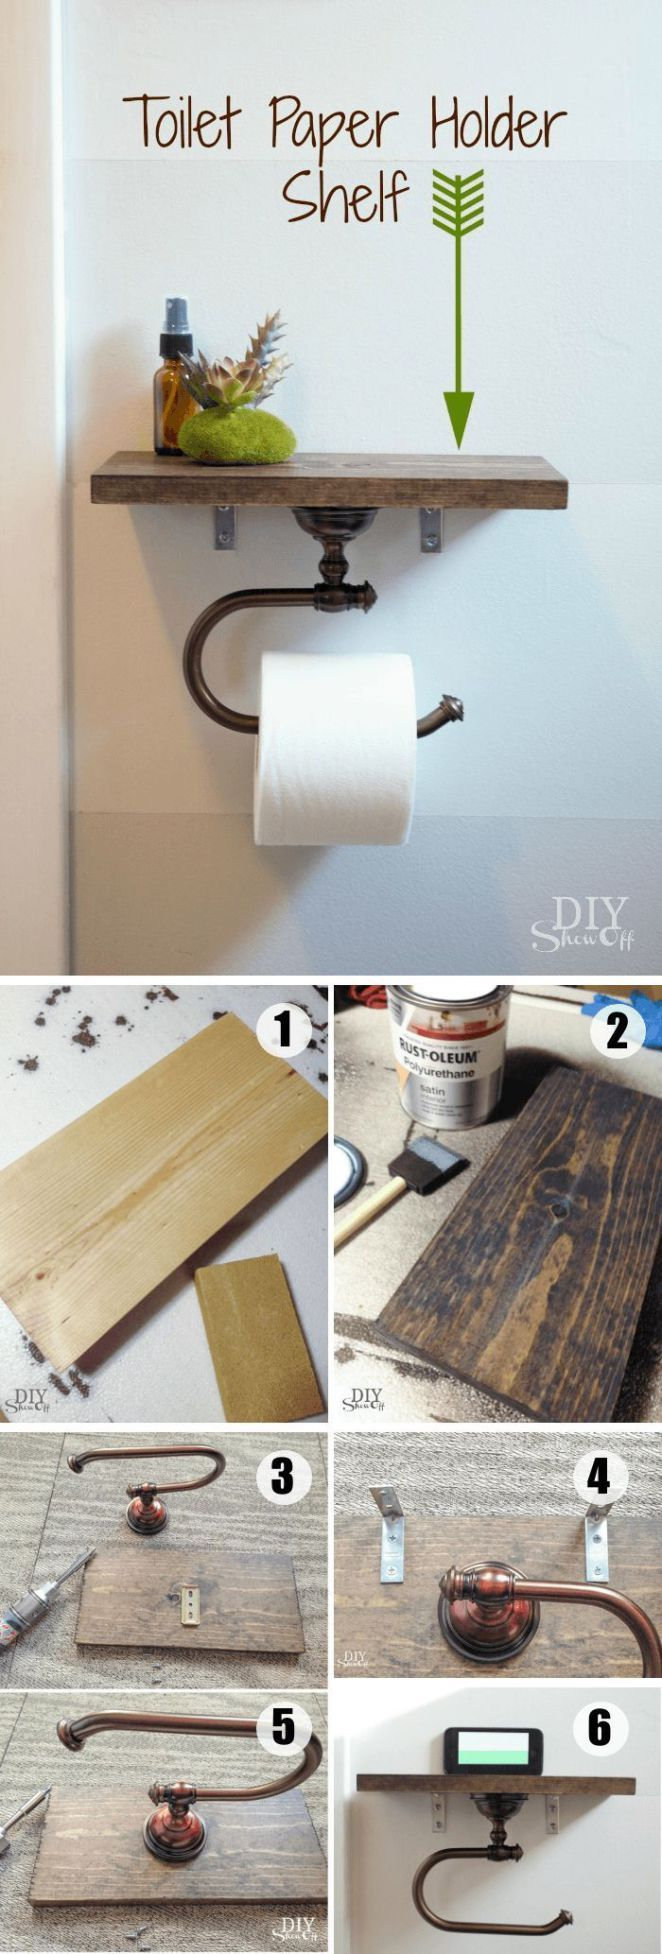 Idée décoration Salle de bain DIY Toilet Paper Holder with Shelf // Use this clever and functional toilet pape